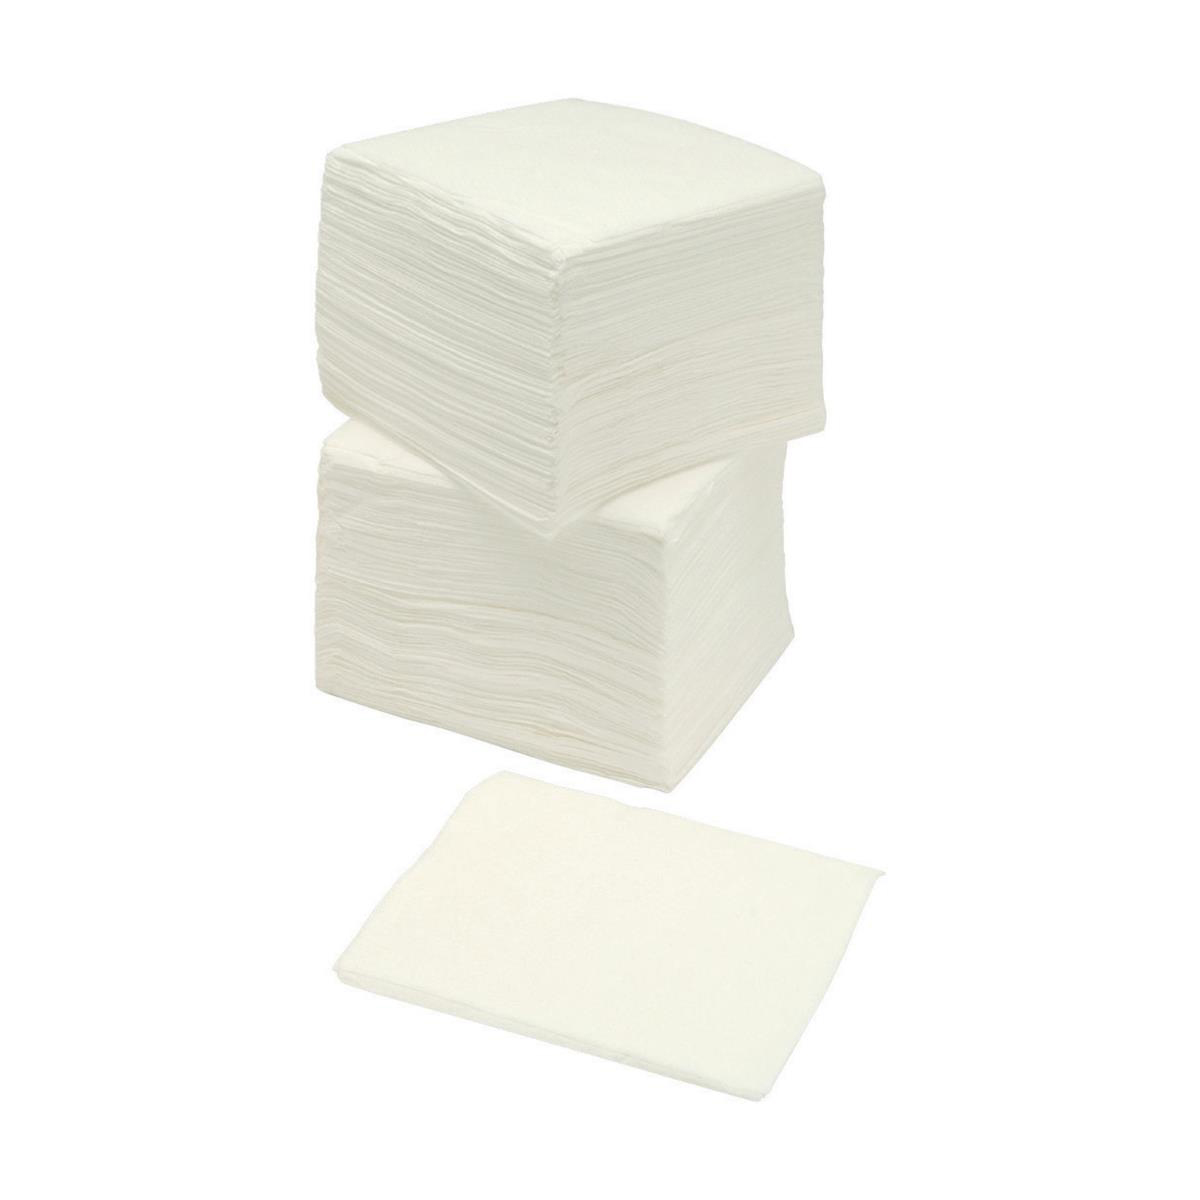 5 Star Facilities Napkins 2-ply 40cm White Pack 100